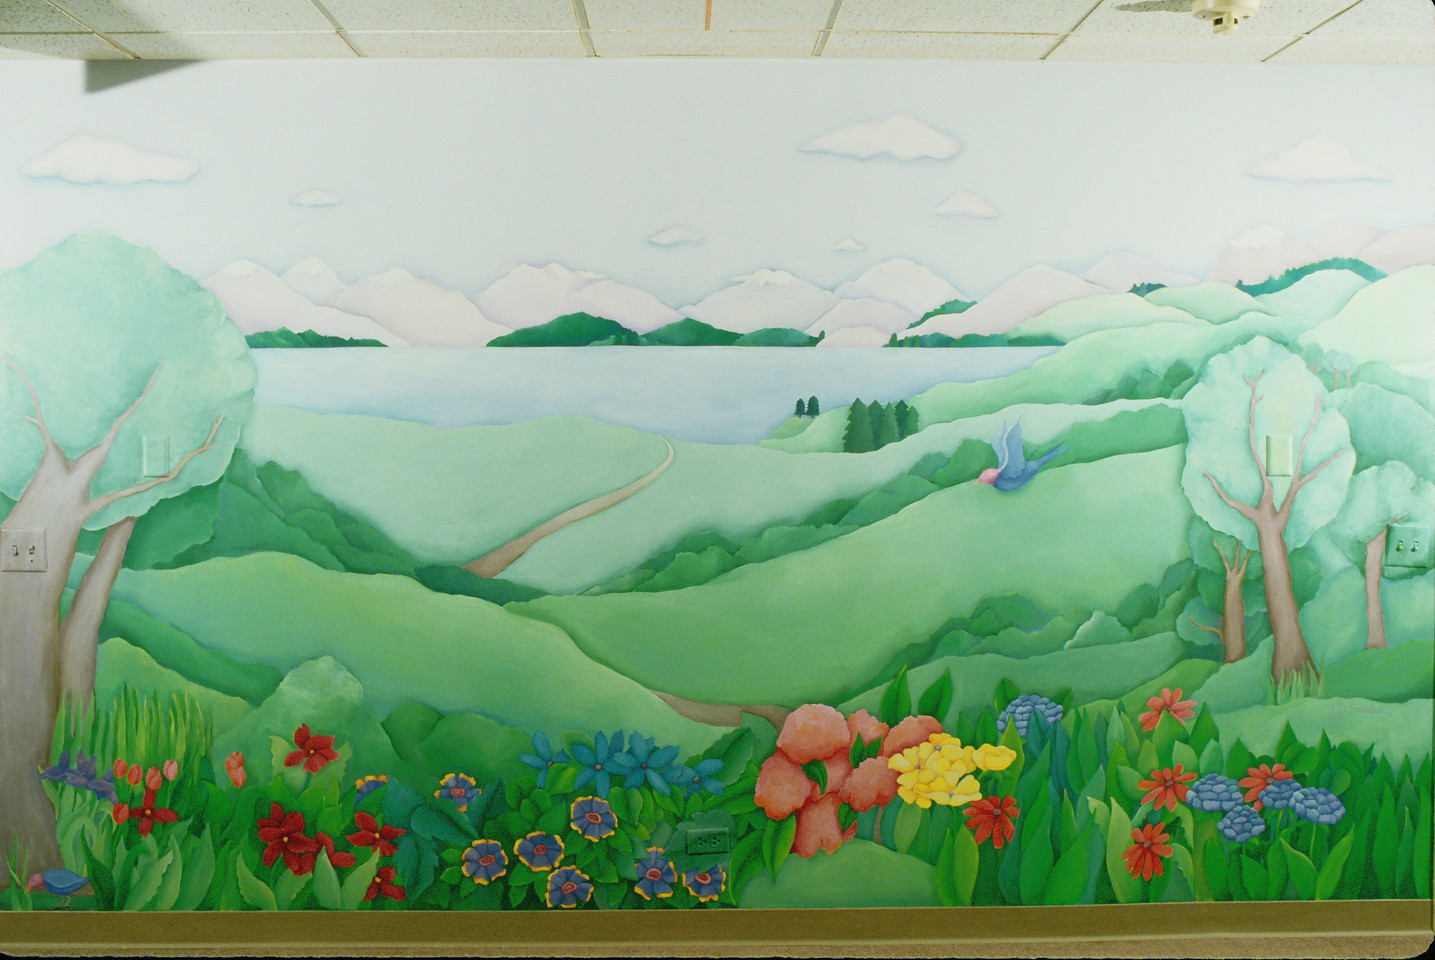 Highland Park Hospital Pyschiatric Floor mural, 9' x 28'